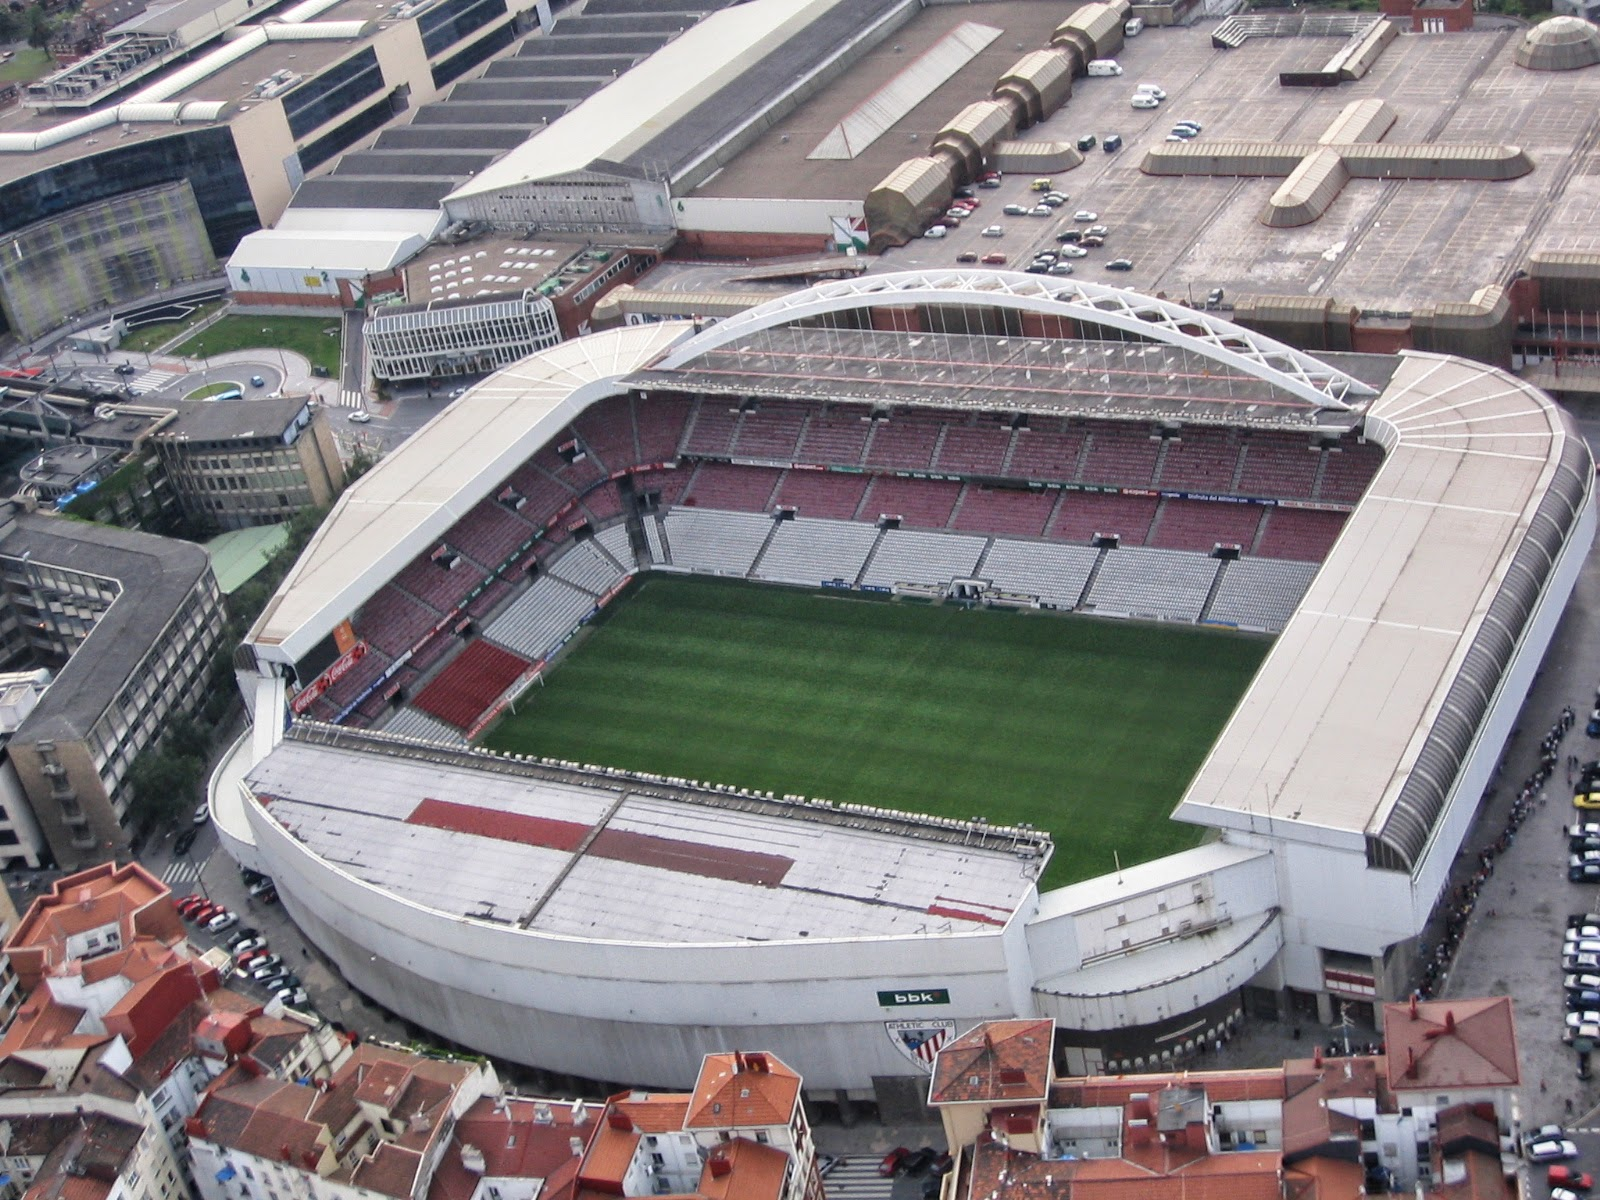 8. San Mamés Stadium - Athletic Bilbao Stadium